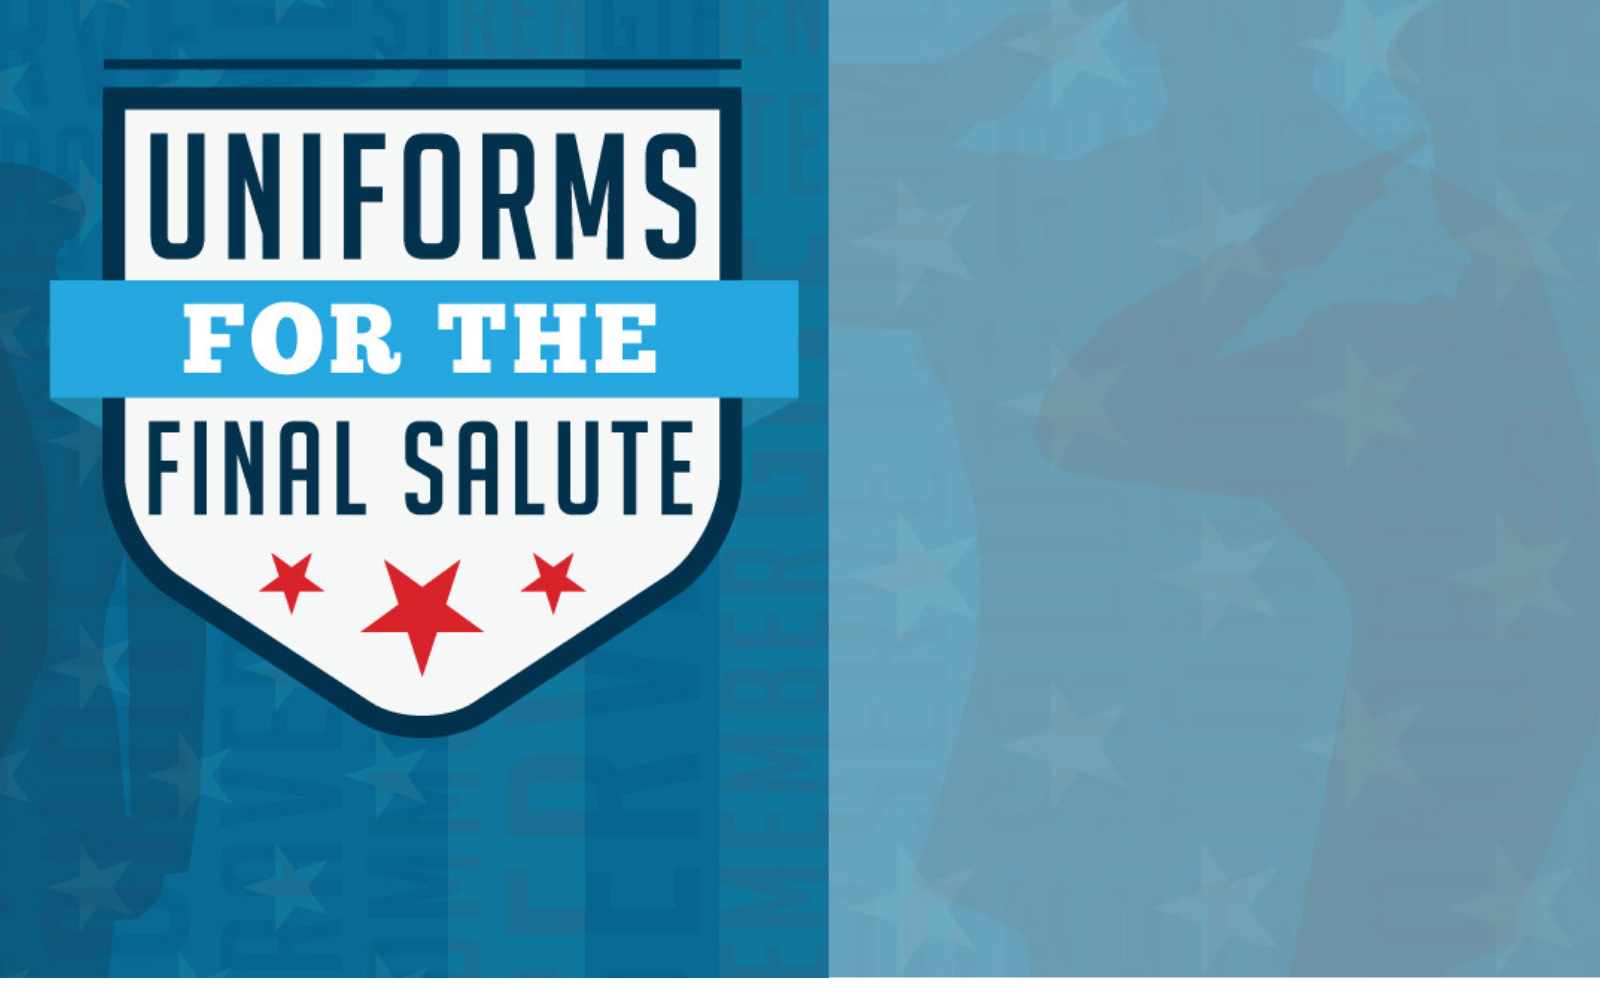 Give a financial gift to support the Uniforms for the Final Salute program image